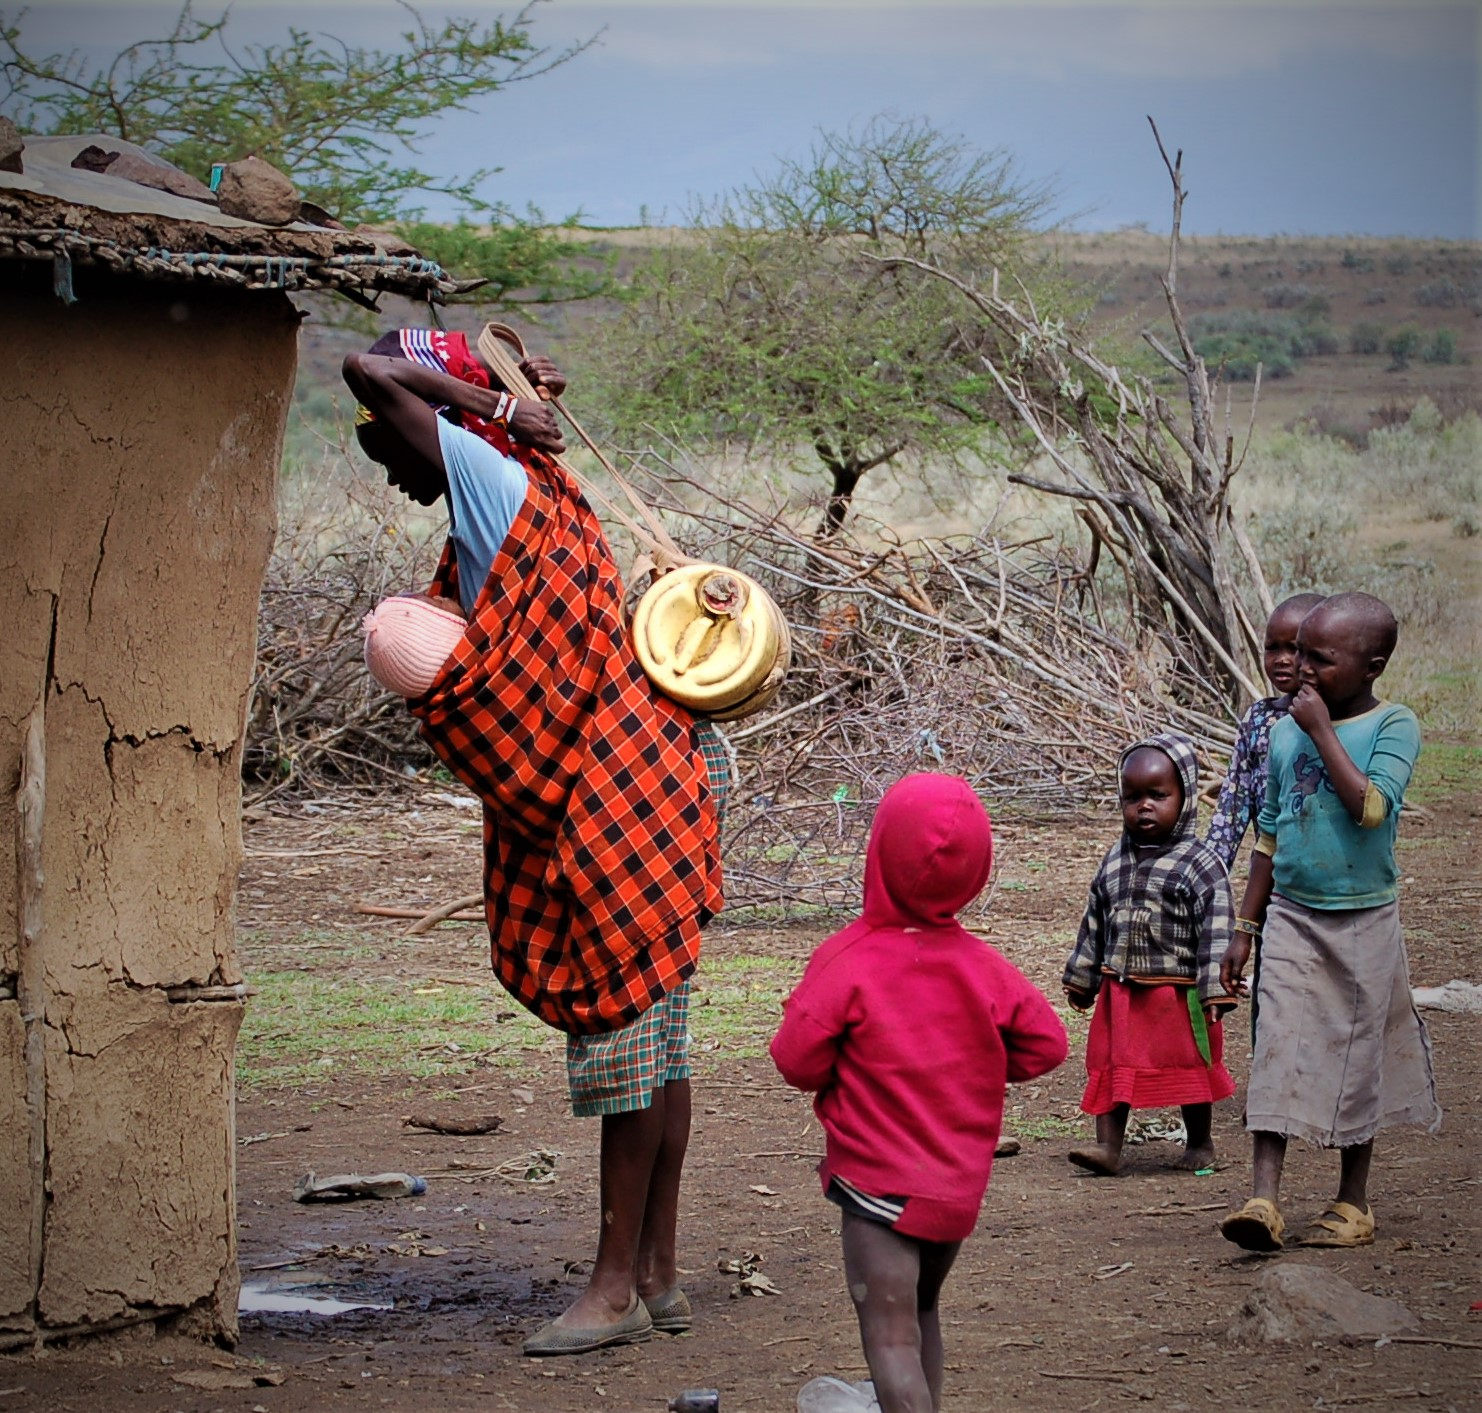 Motherhood in Narok, and many other parts of the world, looks like a baby on your front and water on your back. Water is hard work, and your family depends on you doing this arduous chore day in and day out.